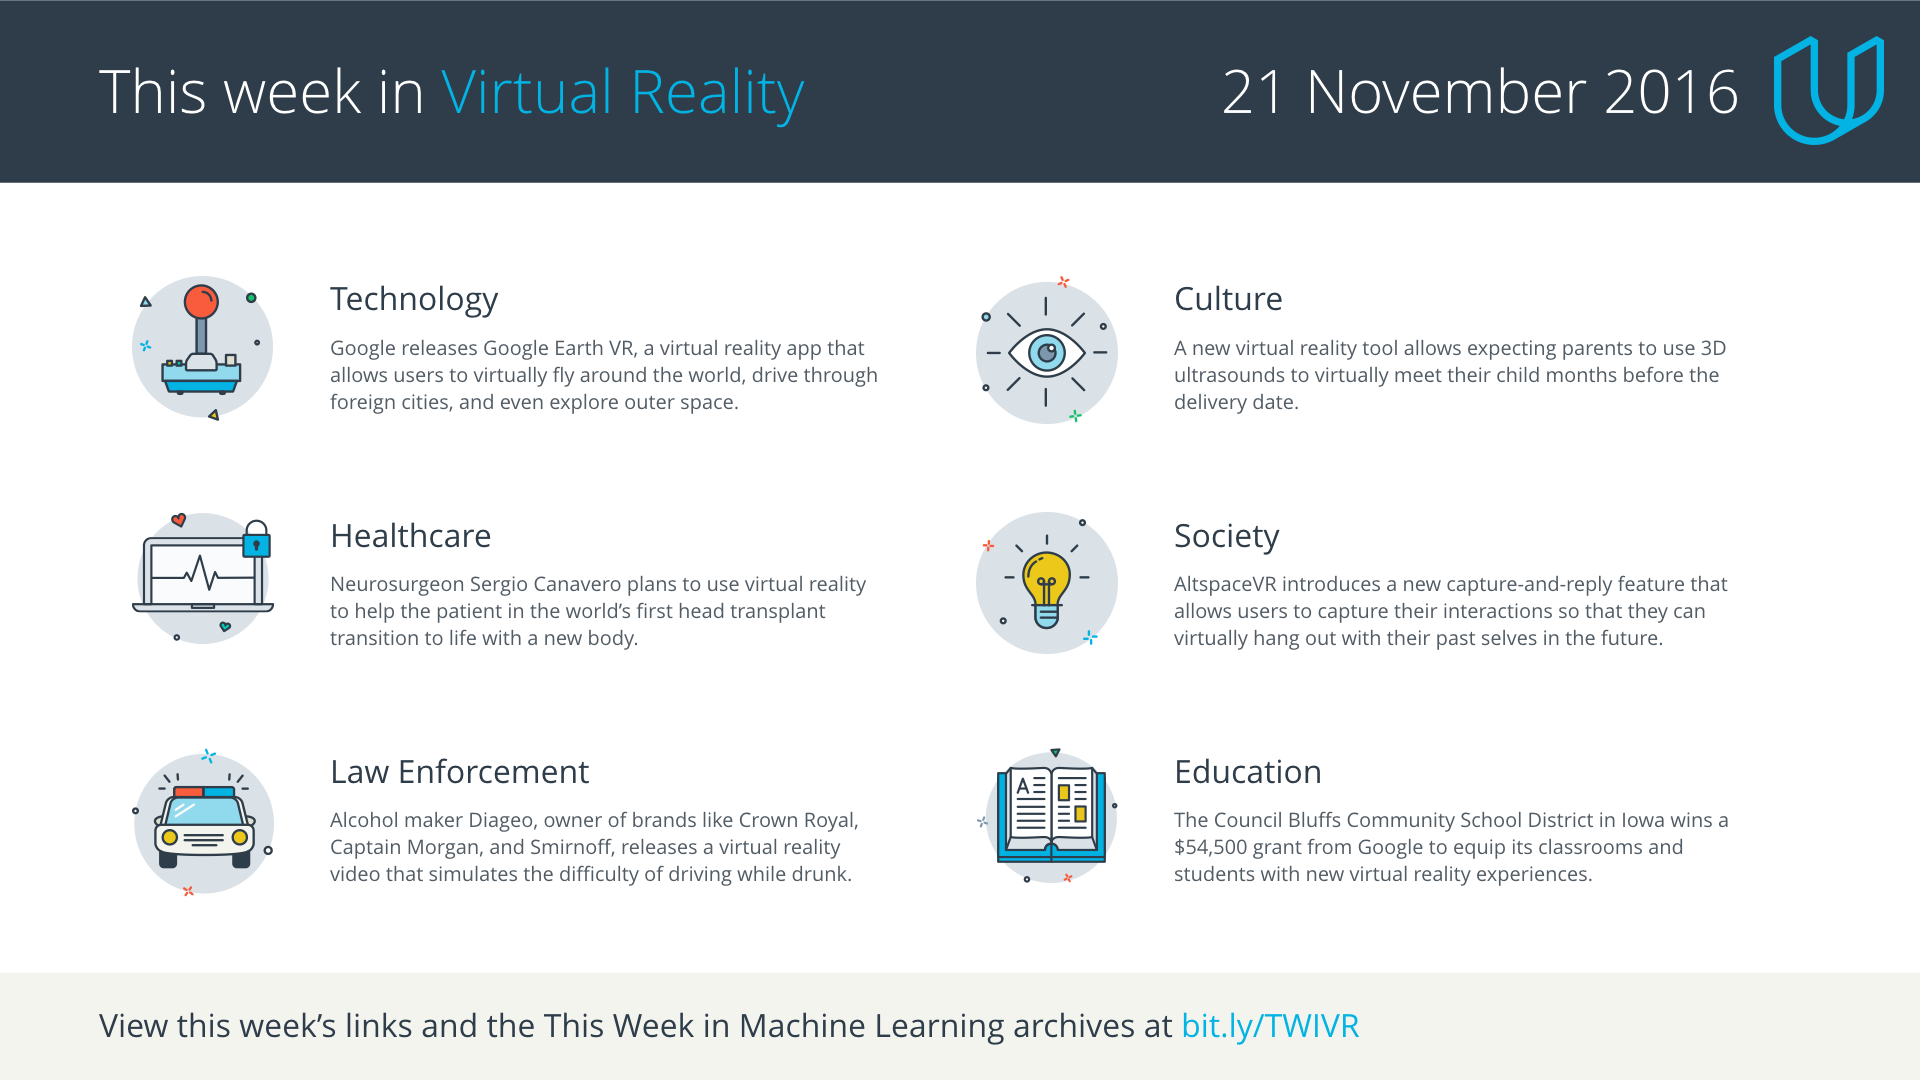 This Week in Virtual Reality, 21 November 2016 - Udacity Inc